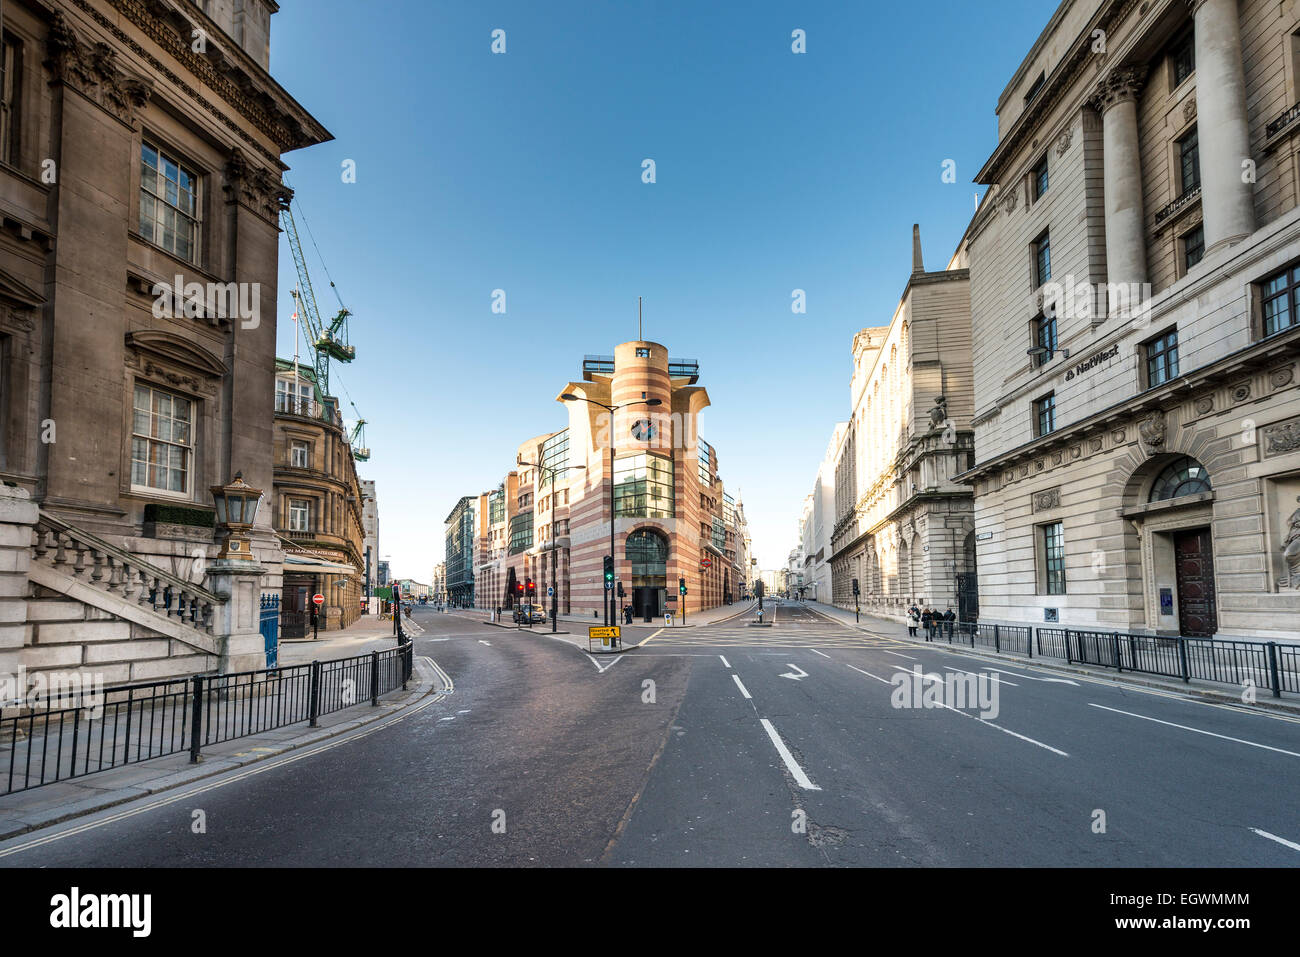 Views from Bank Junction to 1 Poultry, home to Coq d'Argent restaurant - Stock Image